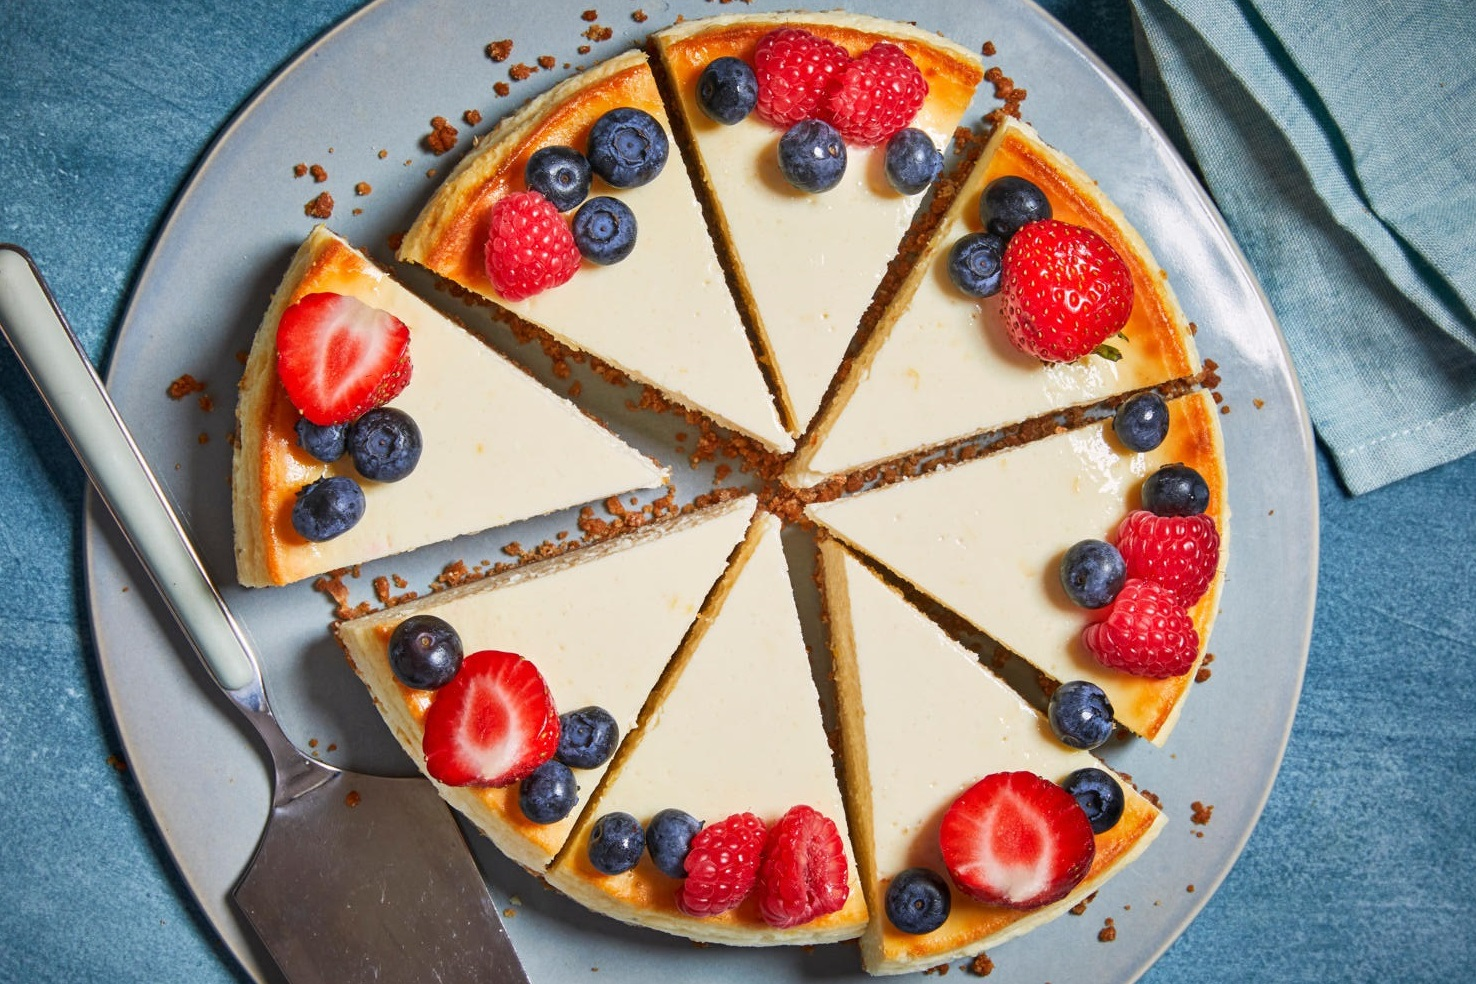 overhead shot of cheesecake topped with fresh strawberries, blueberries, and raspberries